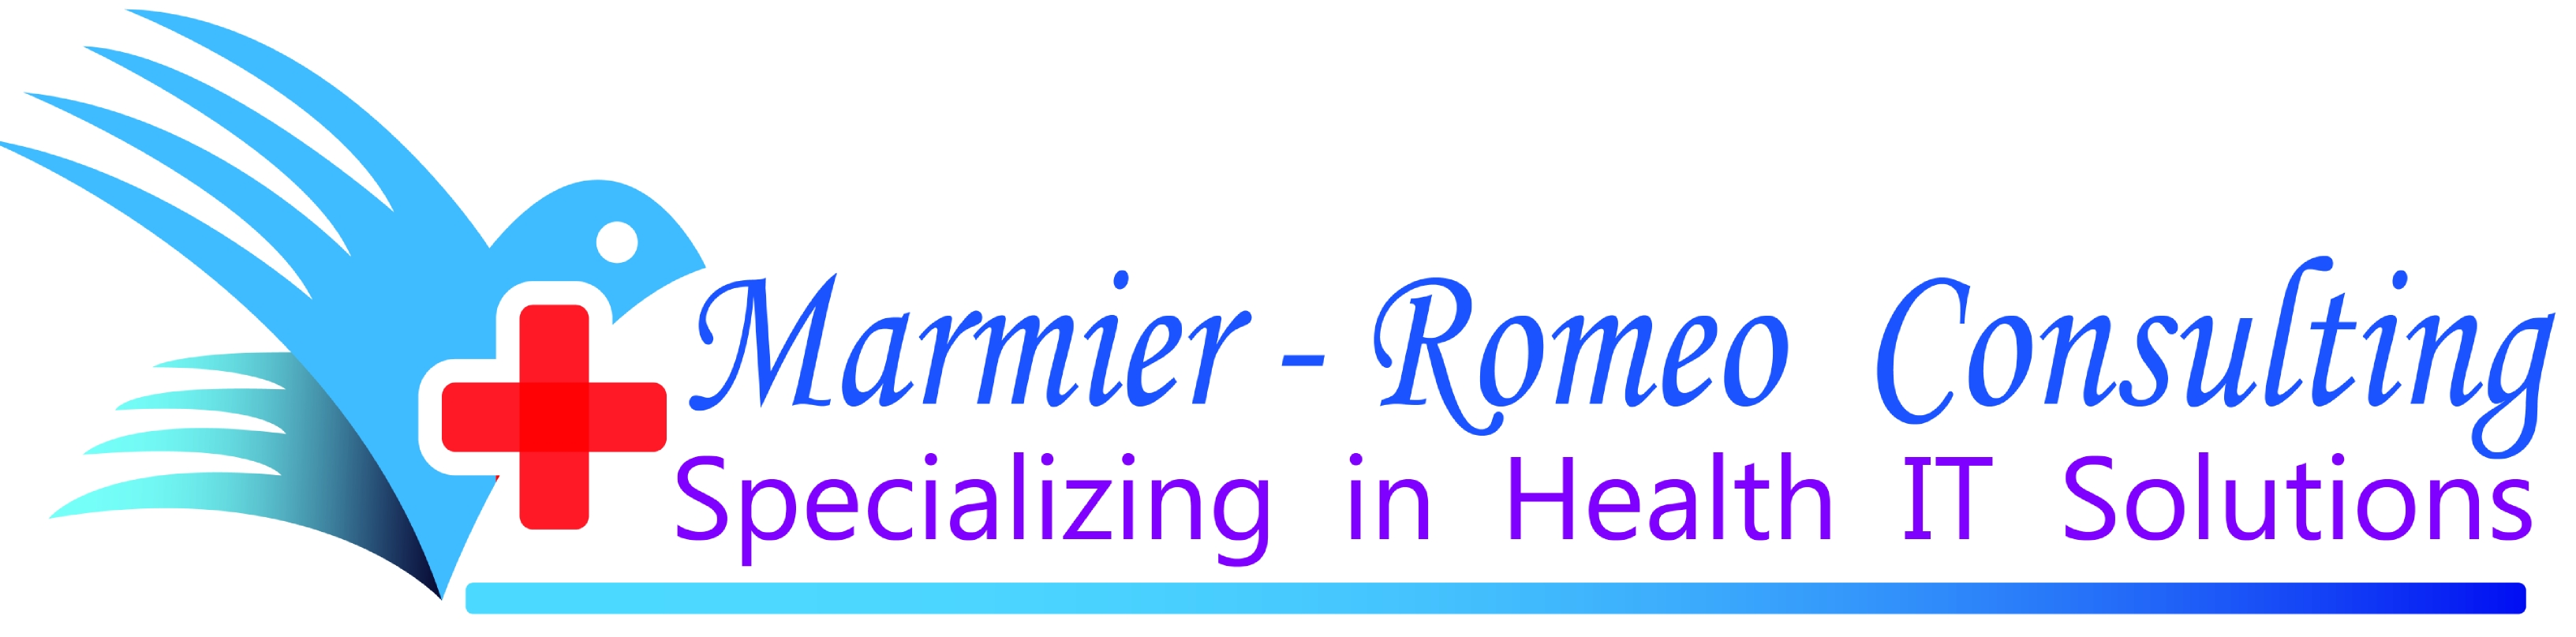 Marmier-Romeo Consulting